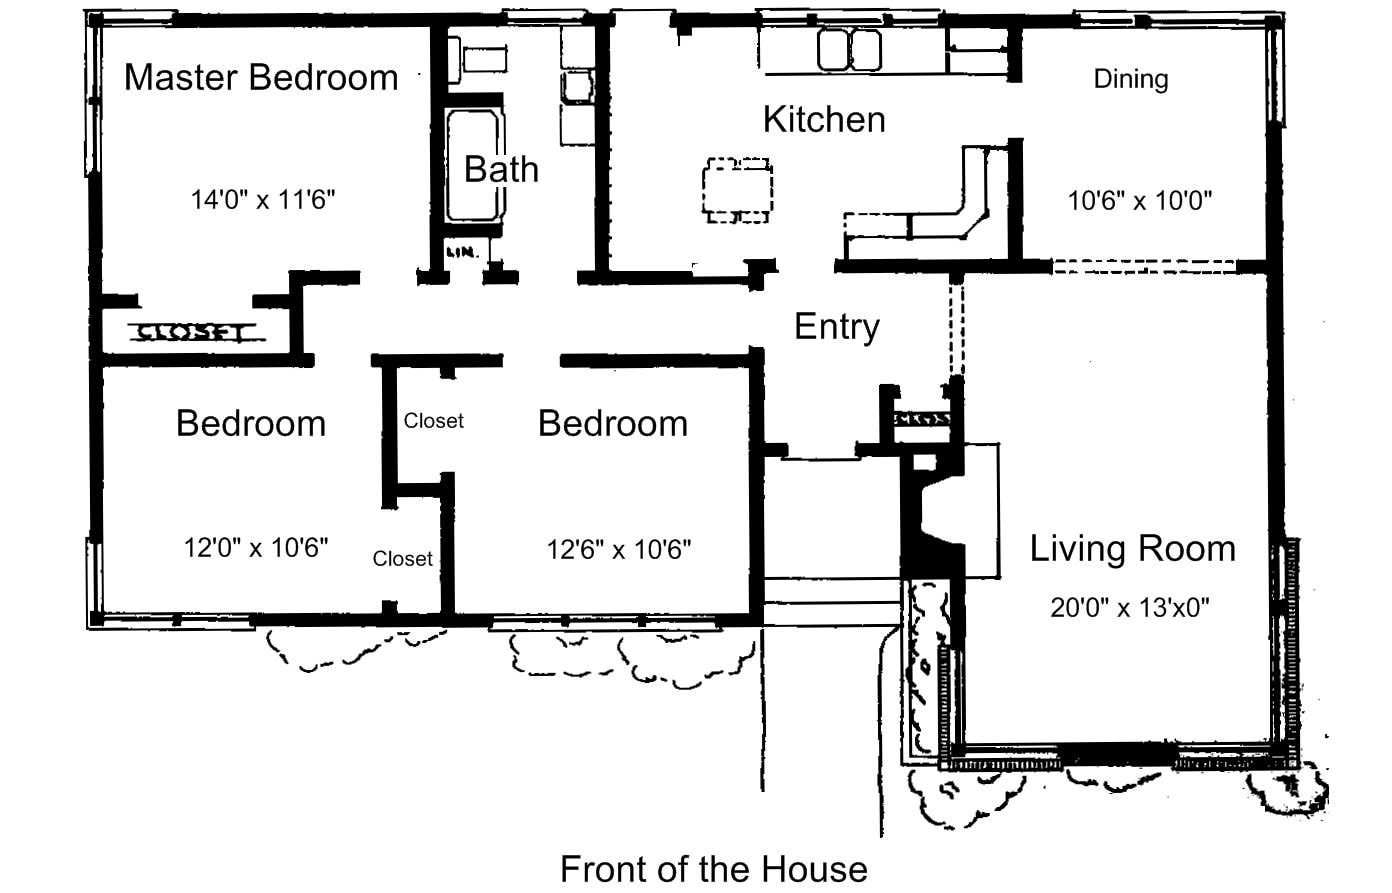 free floor plans for small houses - Plans For Houses